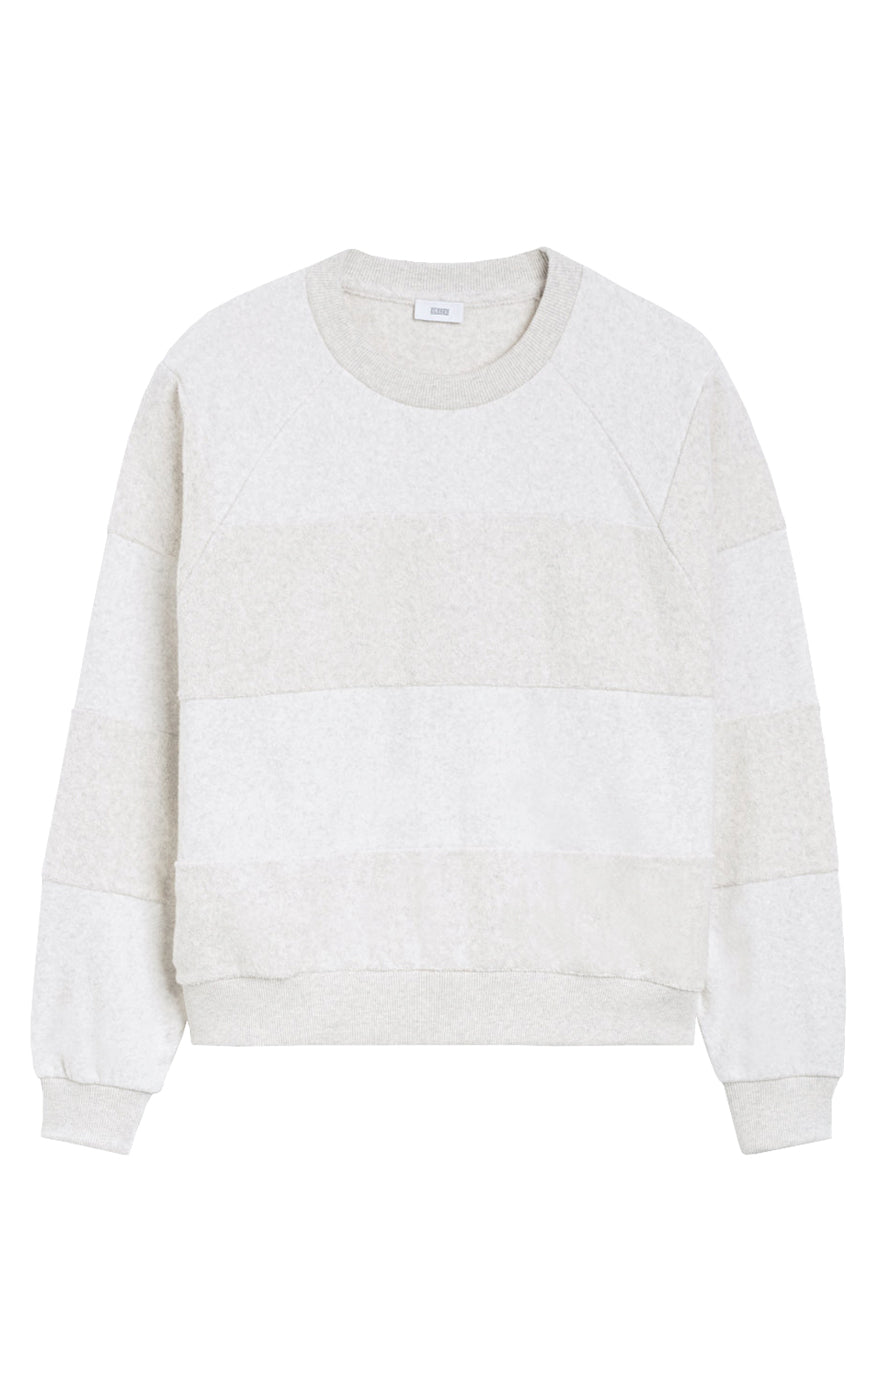 CLOSED Raglan Sleeve Textured 3-D Tonal Stripe Light Grey Stripe Sweatshirt